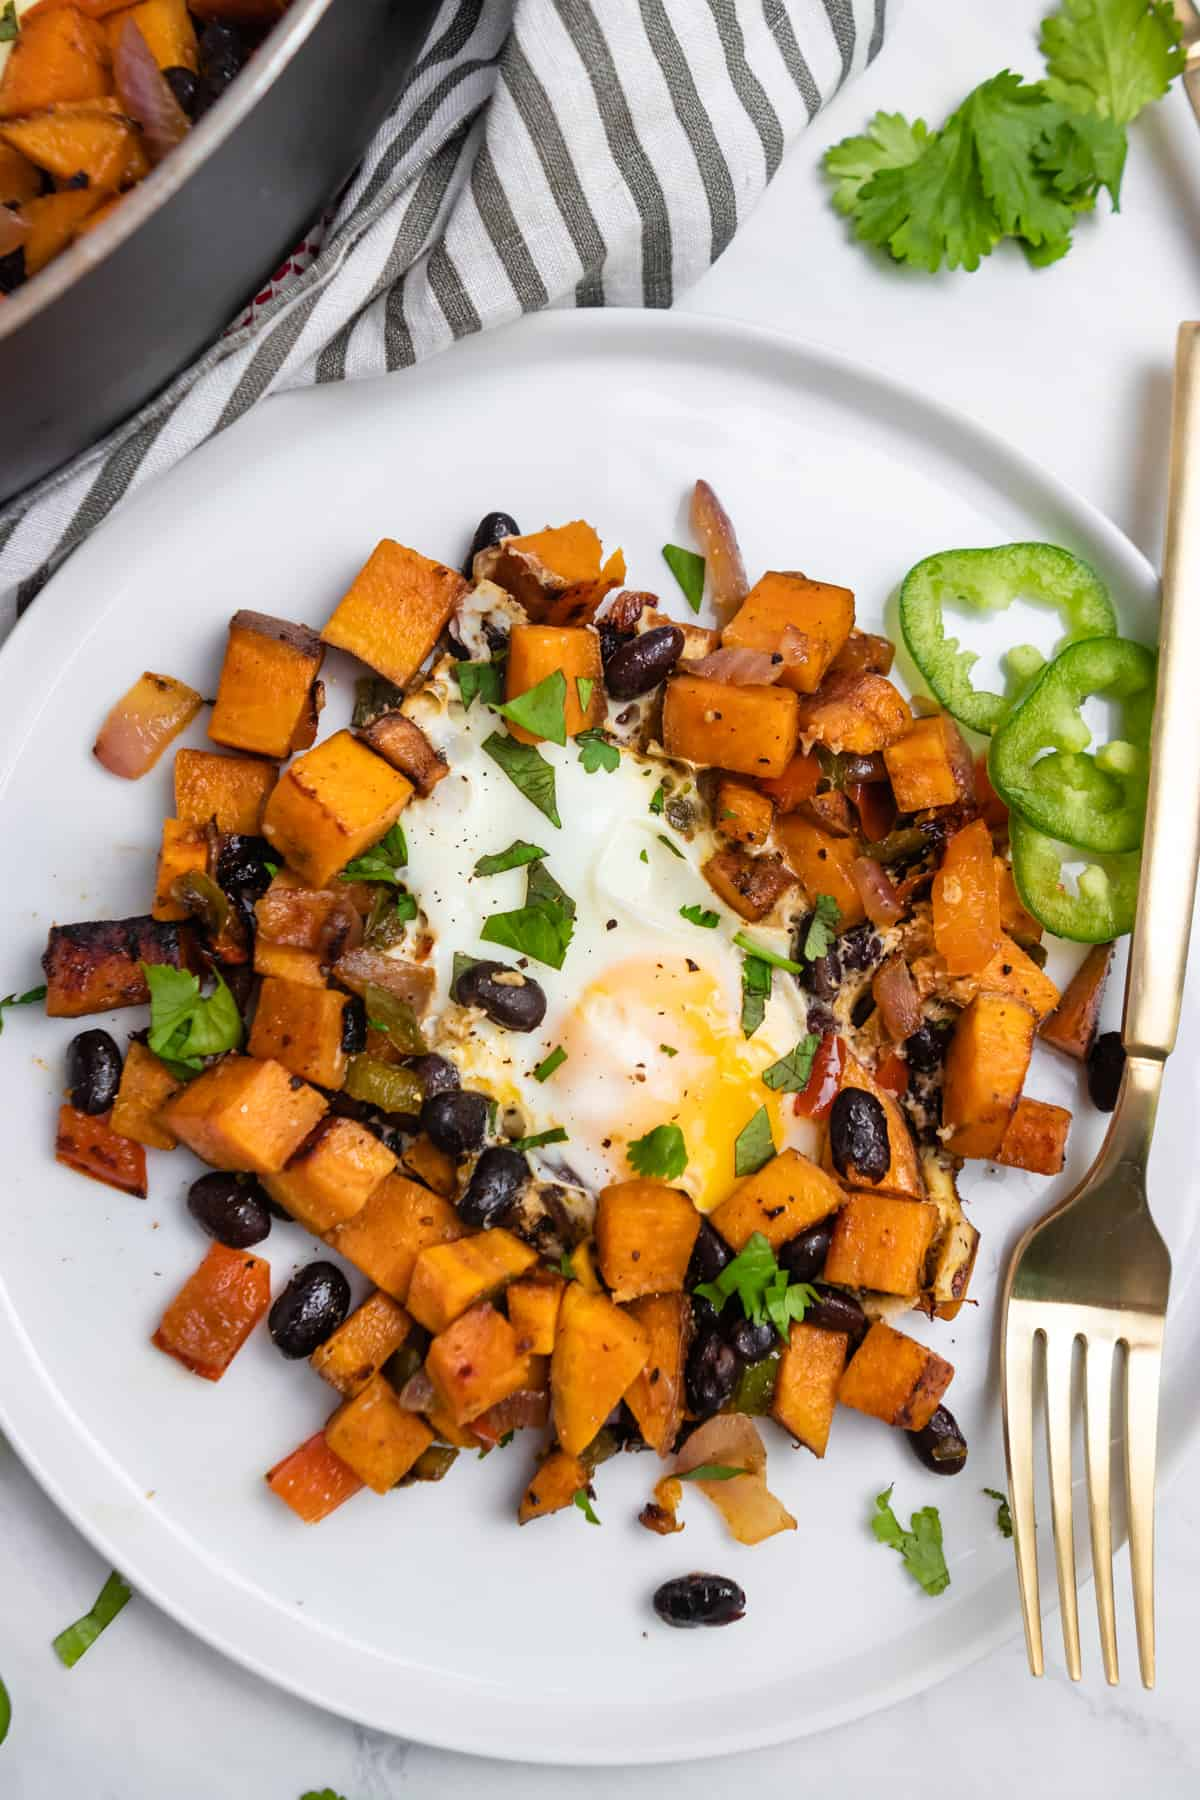 Sweet potato breakfast hash with black beans on plate with egg in center.